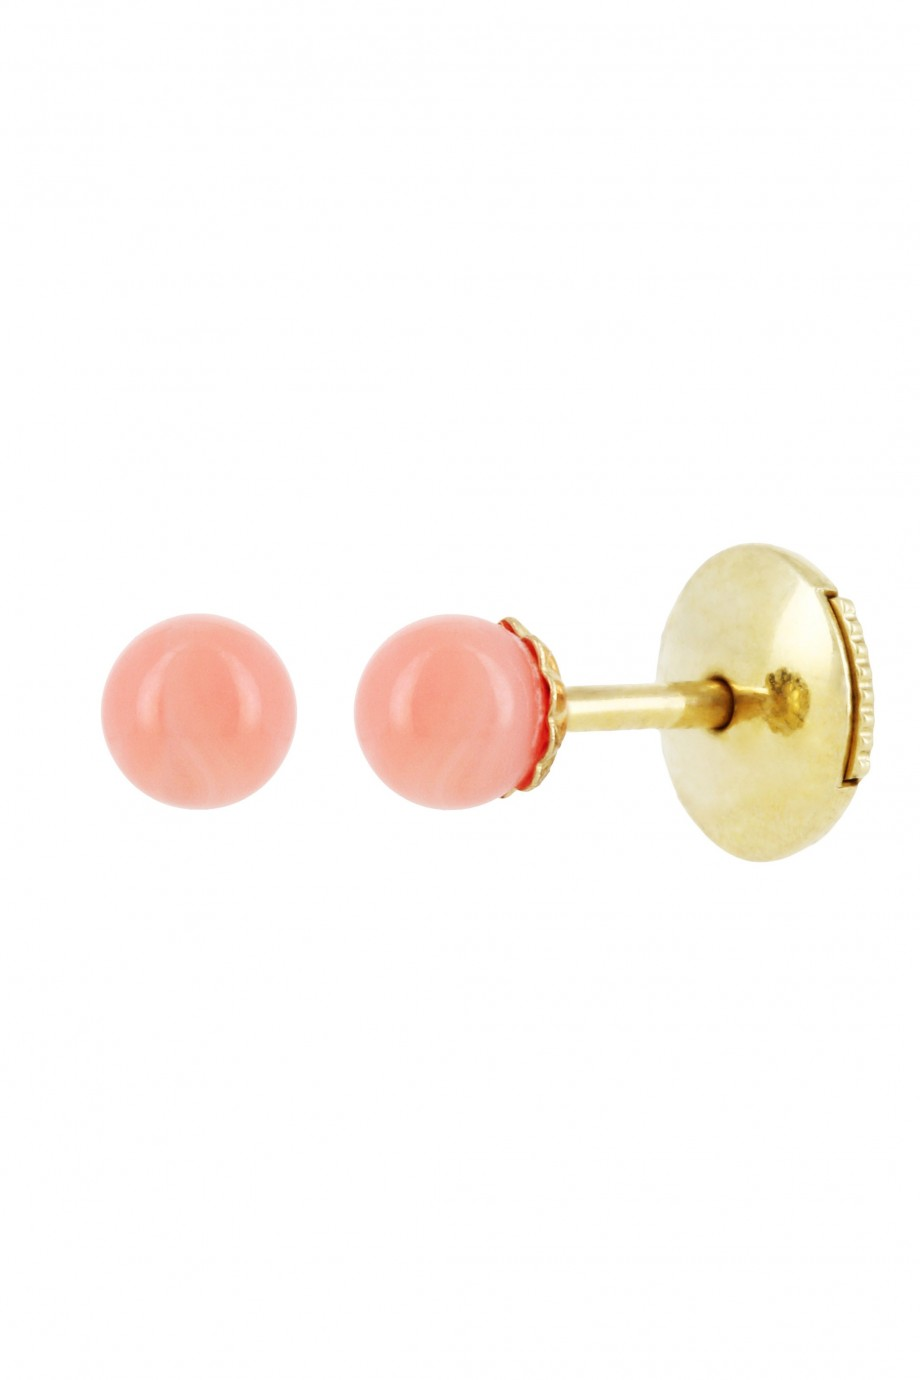 Coral gold earrings by Yvonne Leon Available here